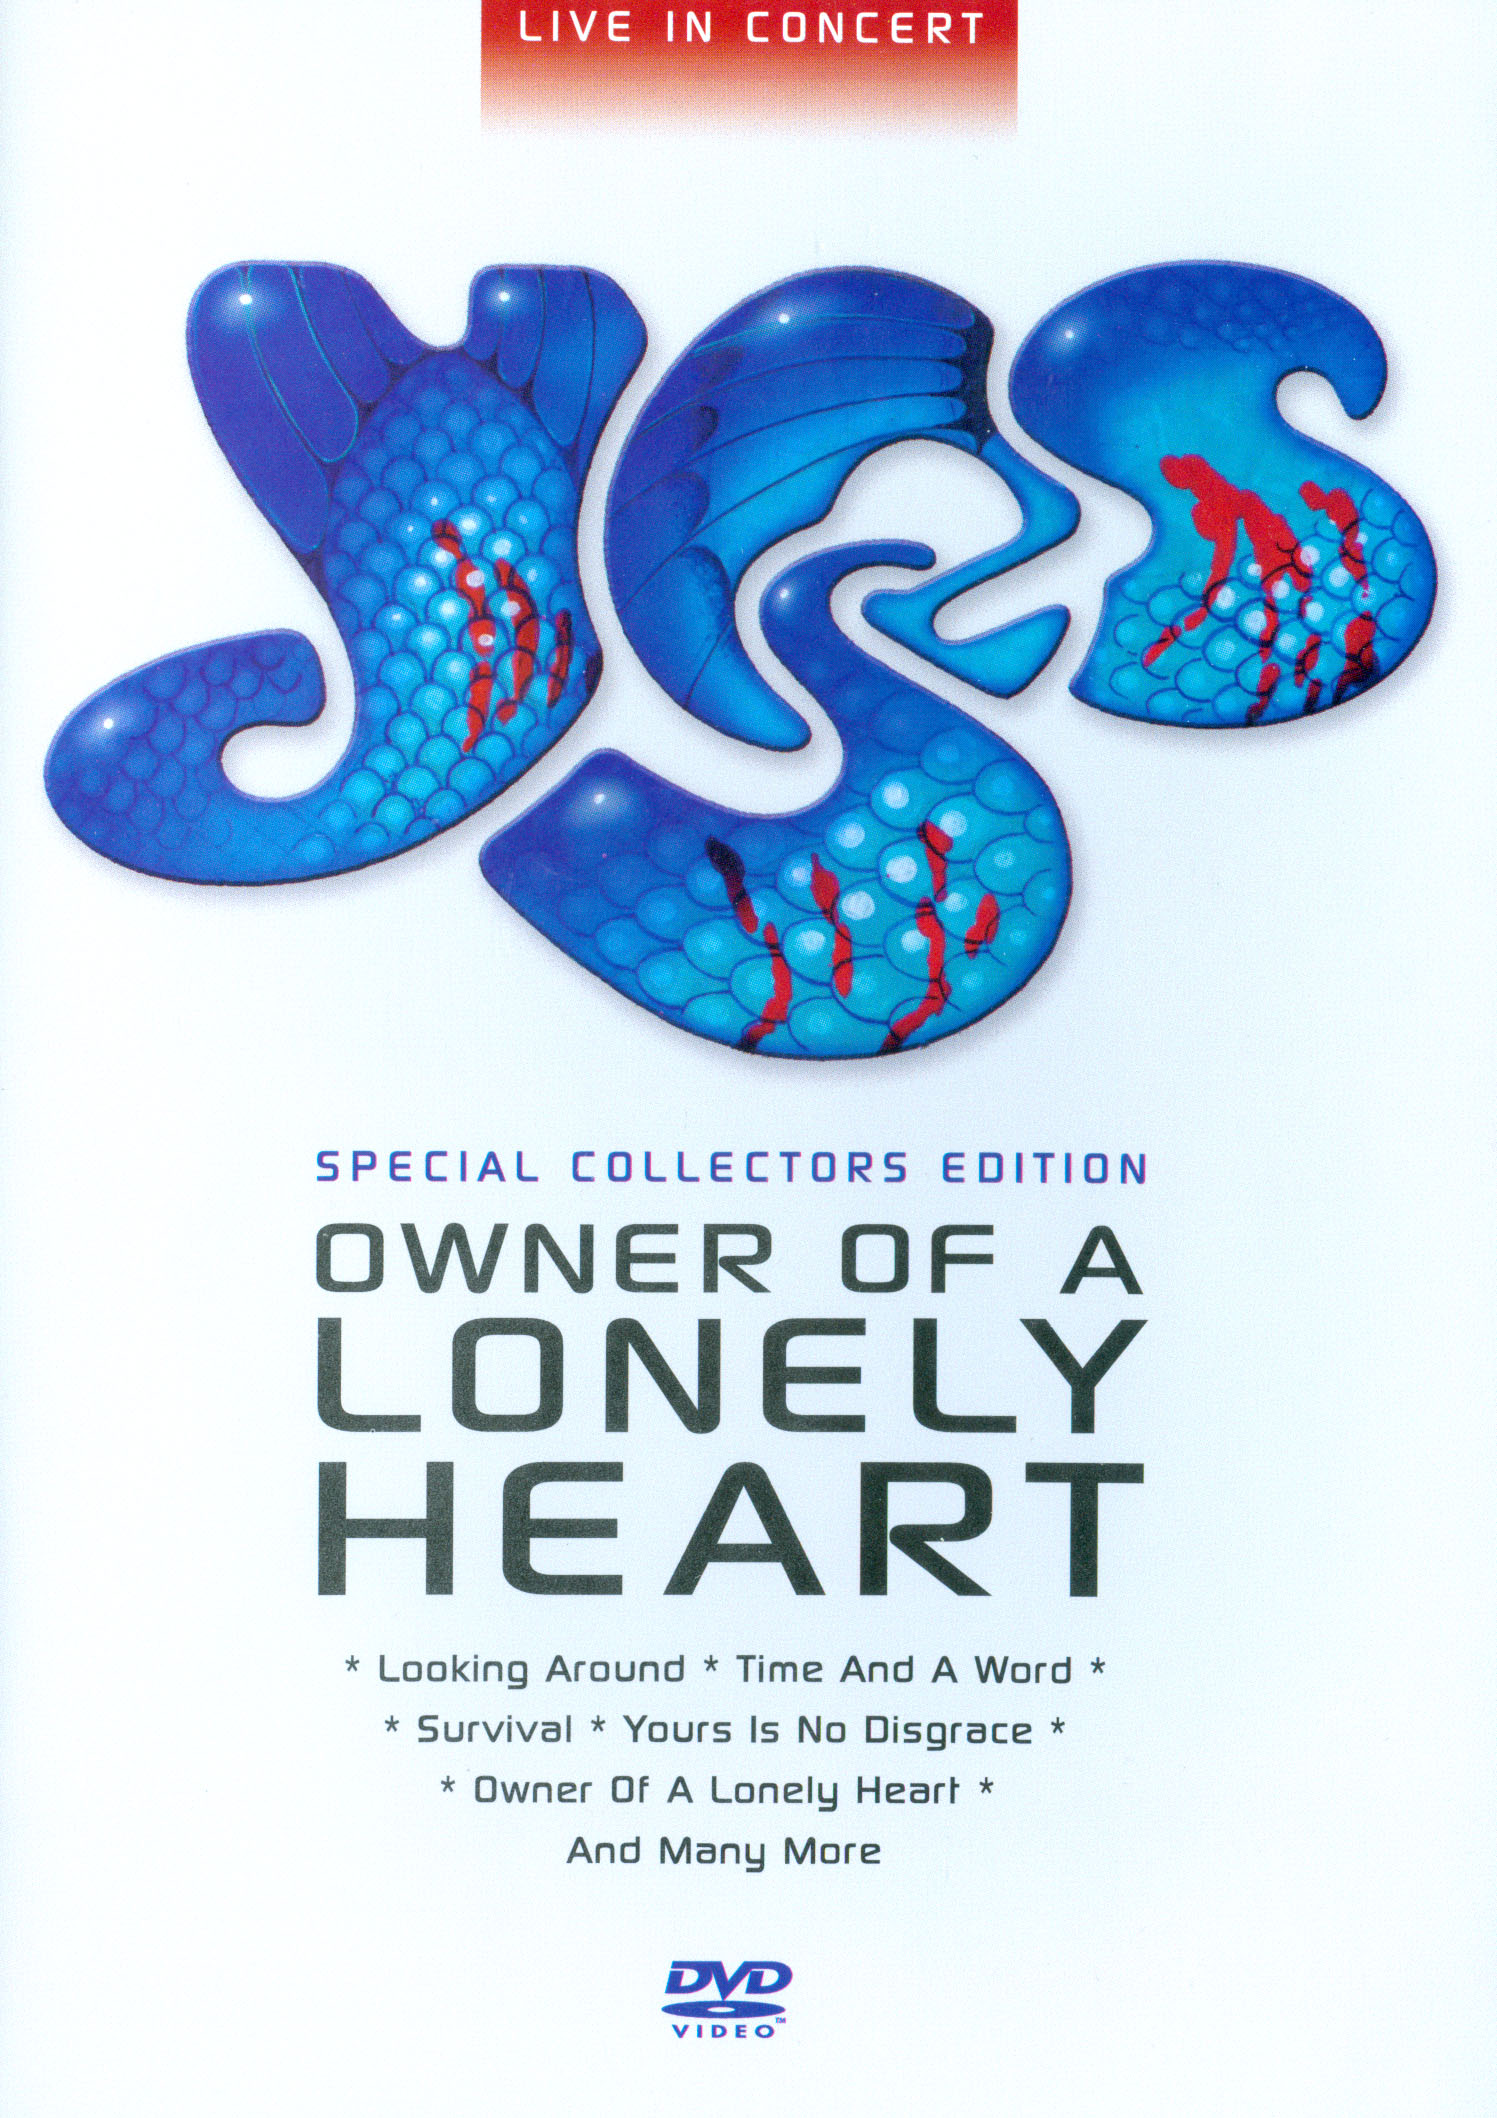 Yes: Owner of a Lonely Heart - Live in Concert